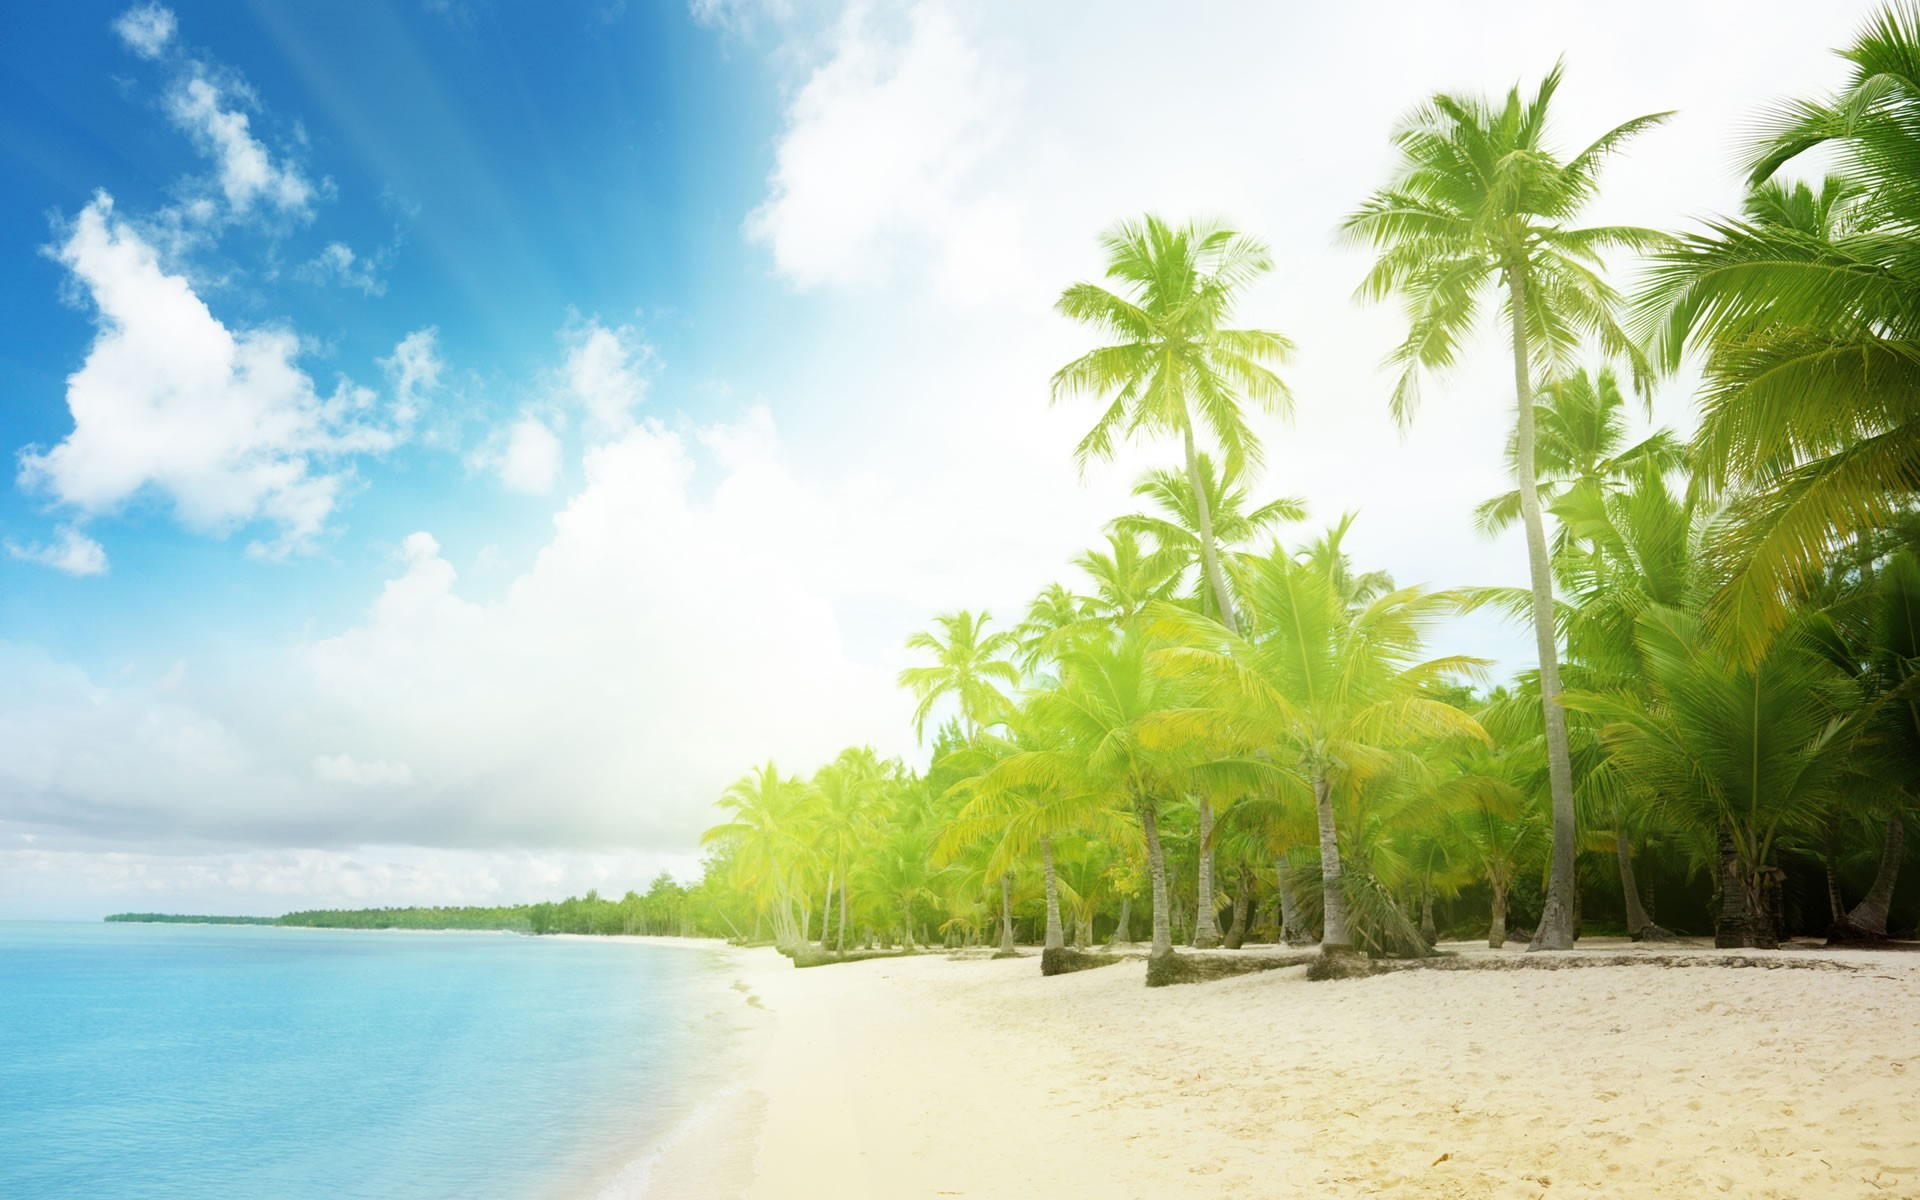 1920x1200  wallpapers nature landscape sunny beach wallpaper background  wallpaper .